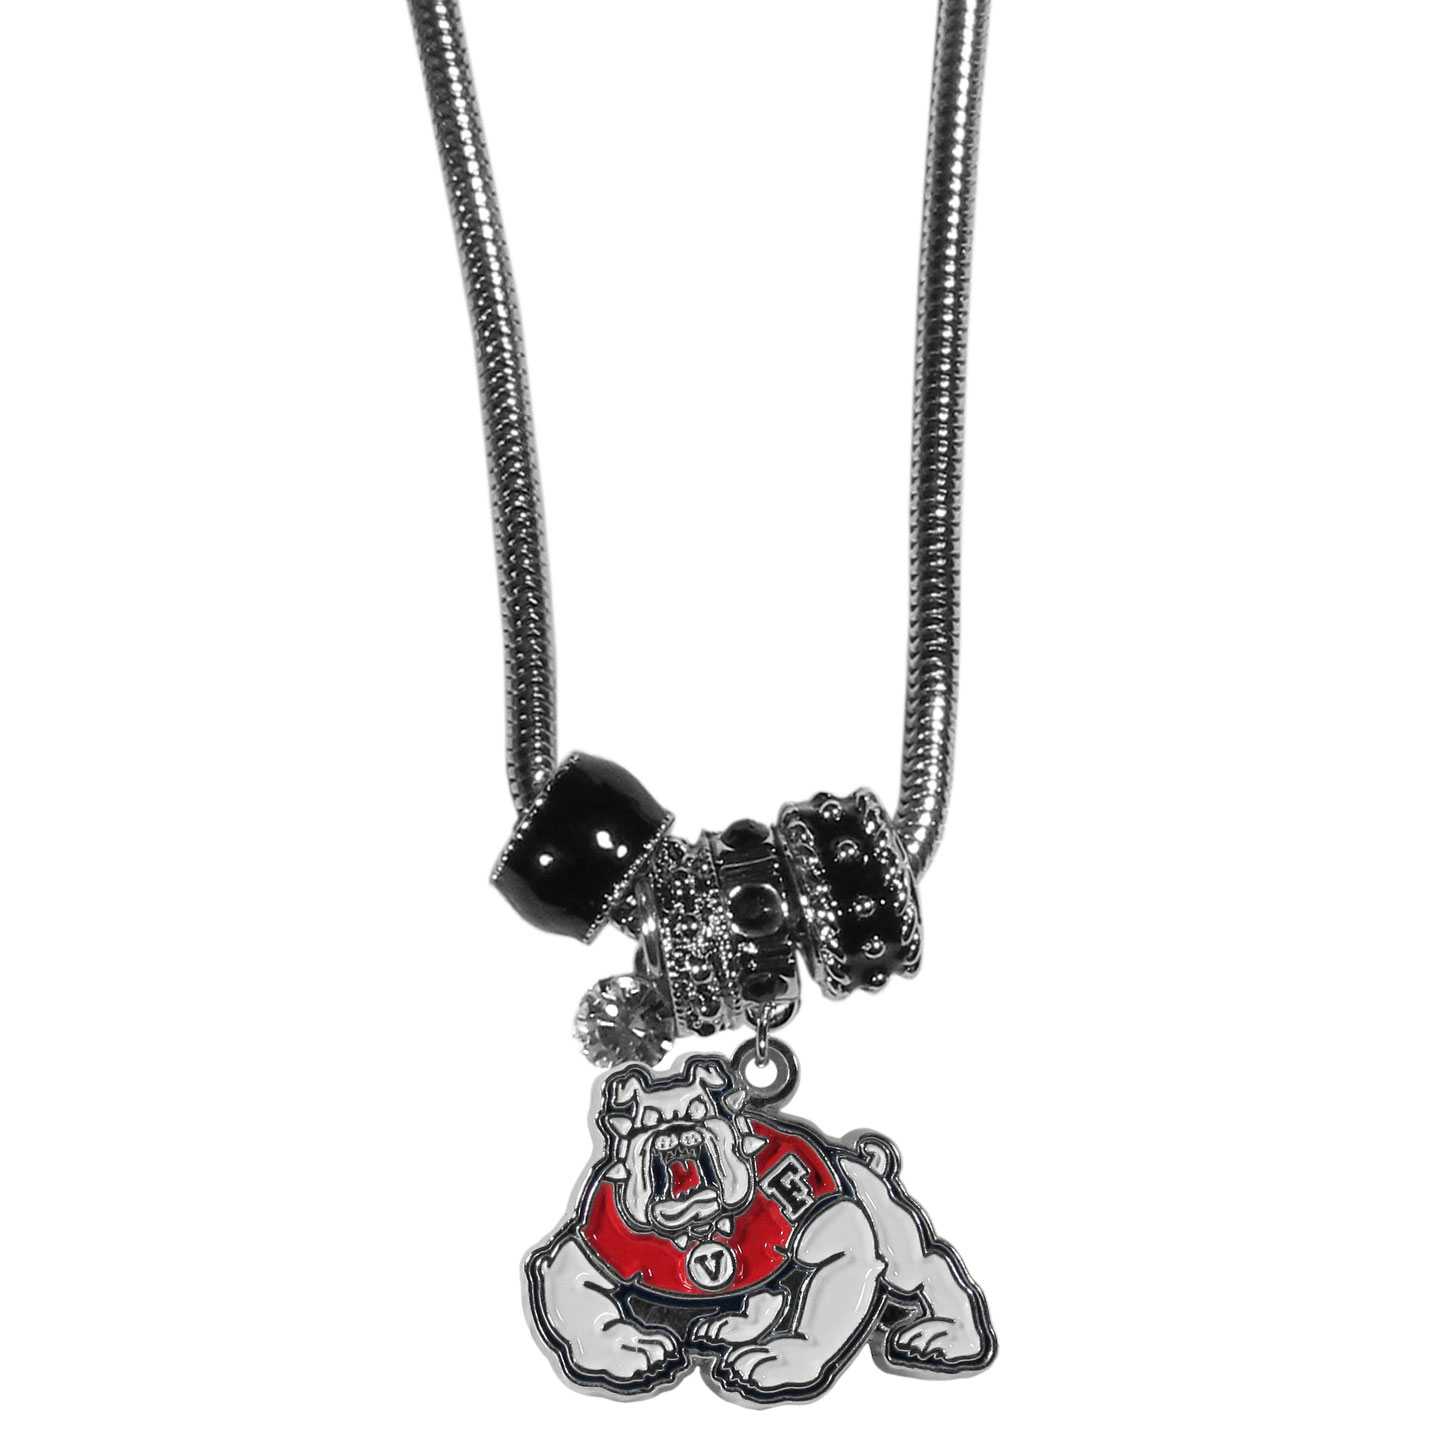 Fresno St. Bulldogs Euro Bead Necklace - We have combined the wildly popular Euro style beads with your favorite team to create our Fresno St. Bulldogs bead necklace. The 18 inch snake chain features 4 Euro beads with enameled team colors and rhinestone accents with a high polish, nickel free charm and rhinestone charm. Perfect way to show off your team pride.